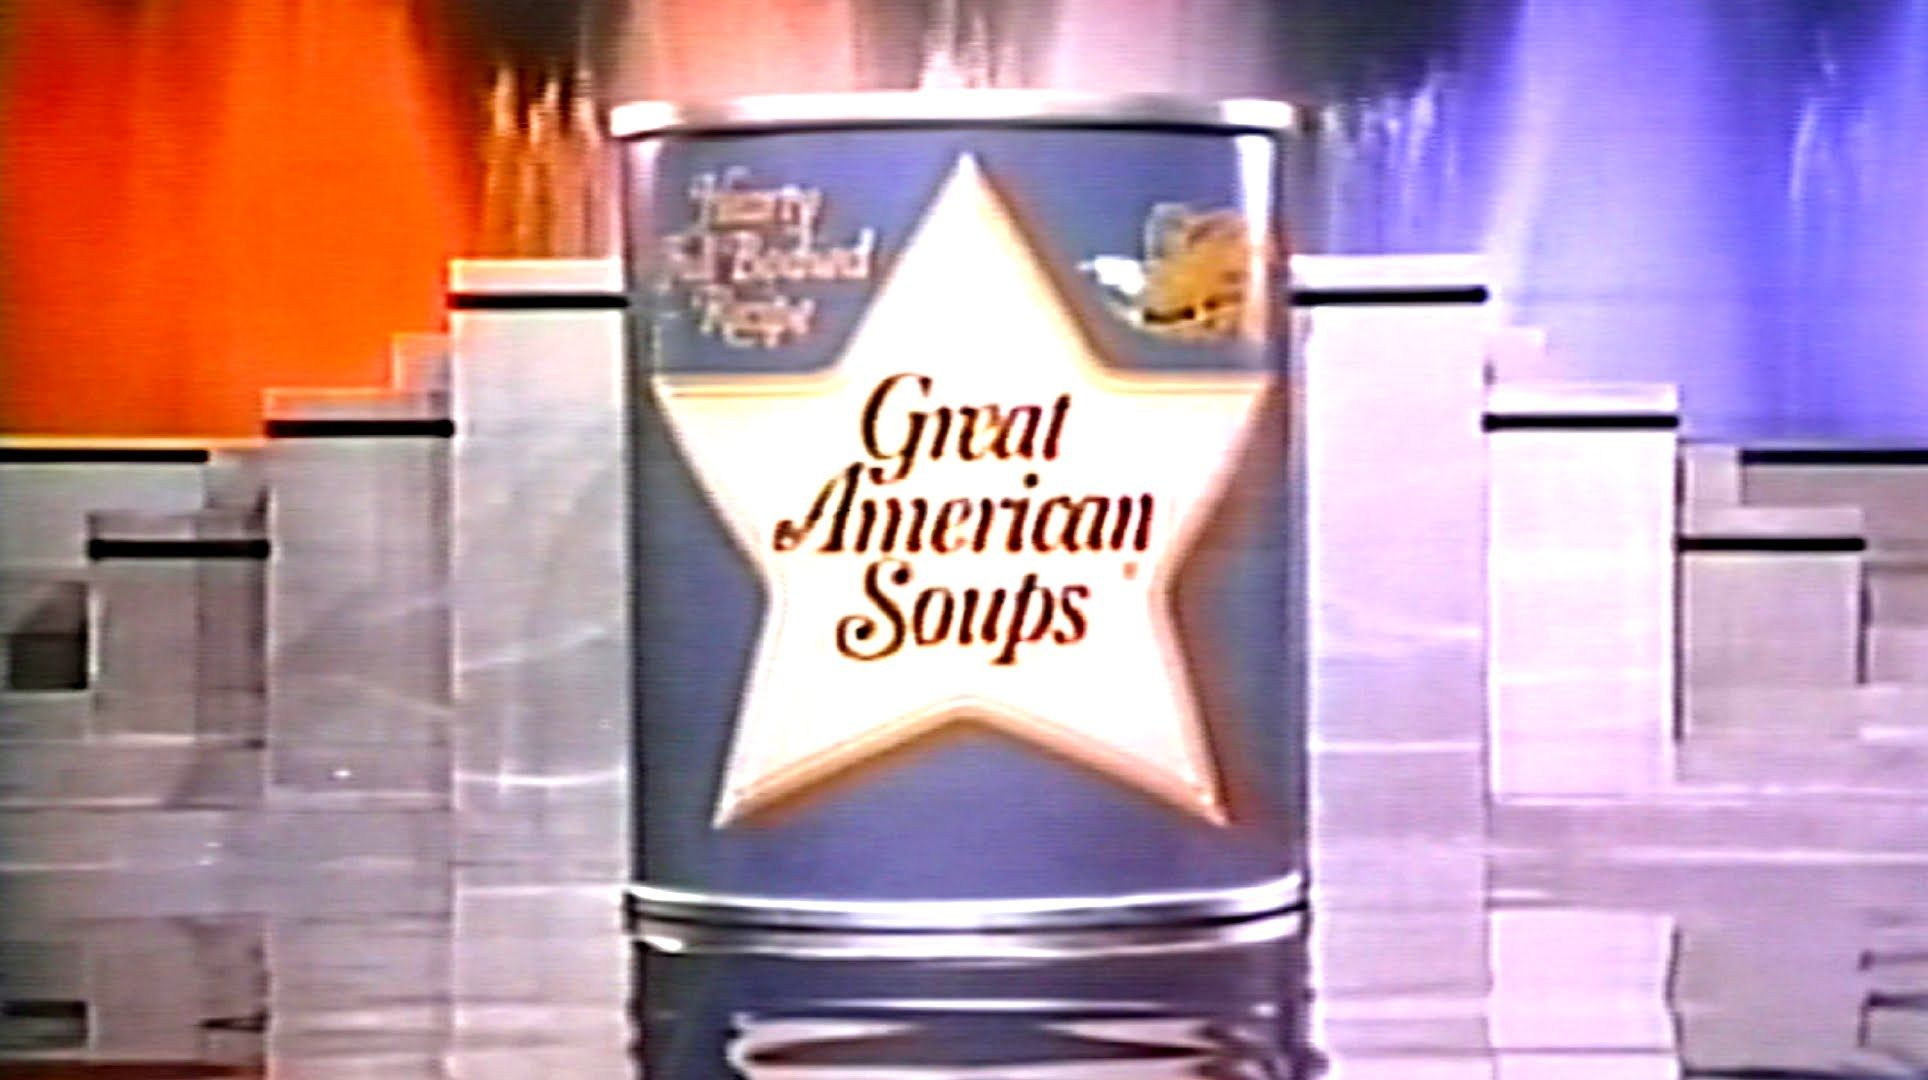 Great American Soups with Ann Miller Commercial  (Archival footage)